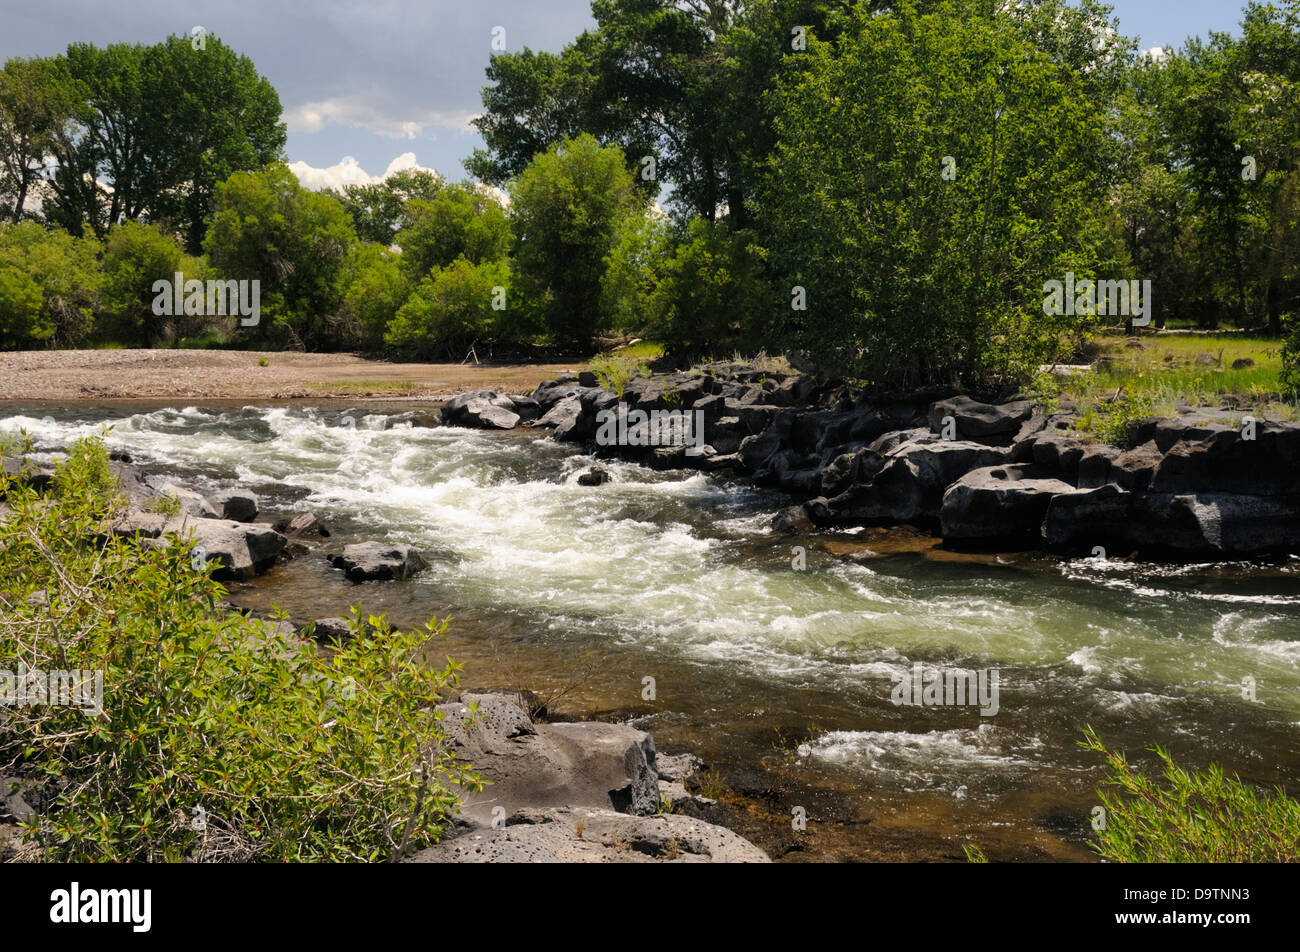 River rushes past rocky riverbank. - Stock Image